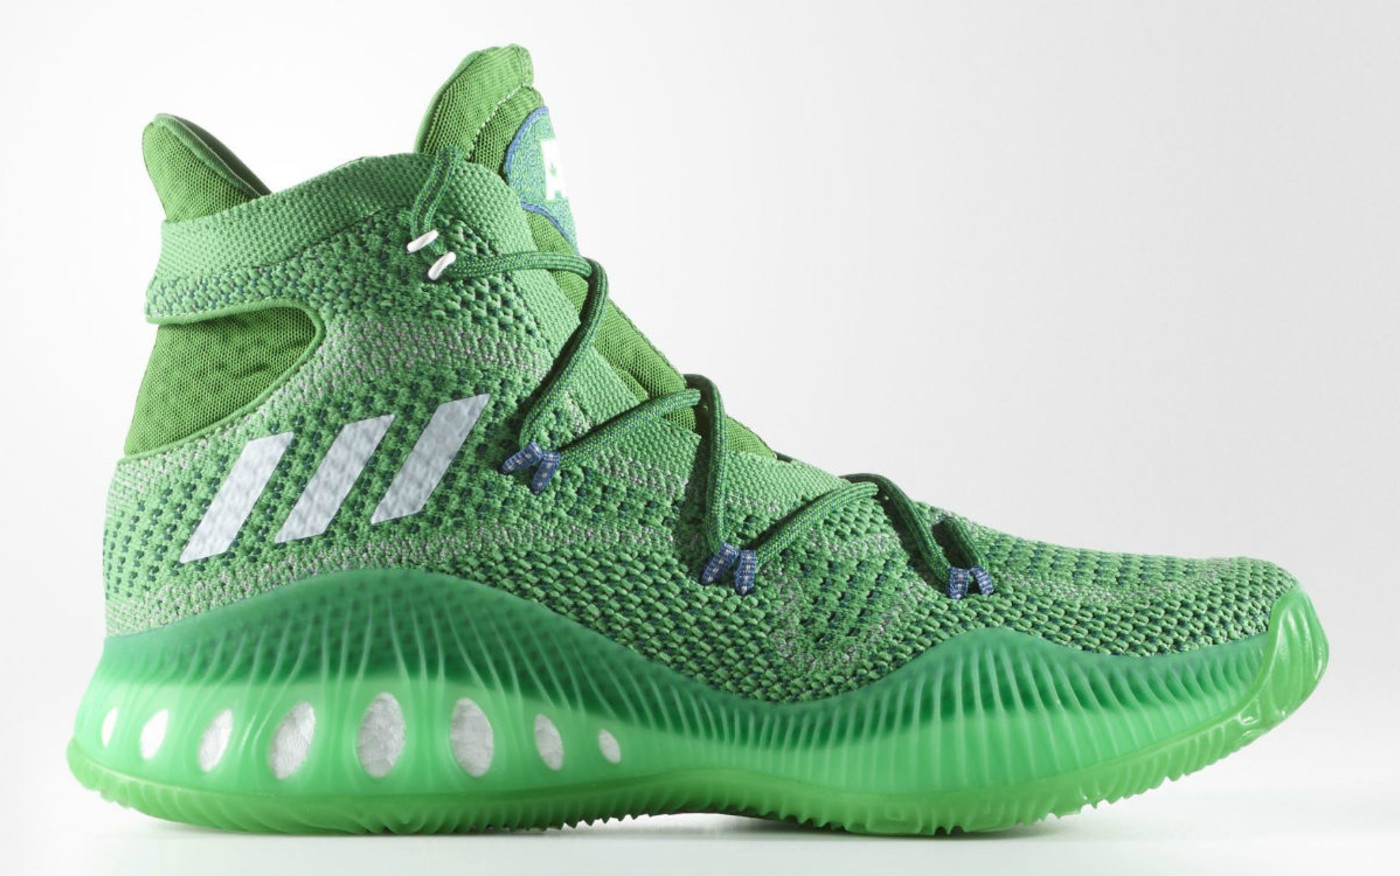 Adidas Crazy Explosive Andrew Wiggins Green Profile BW0626